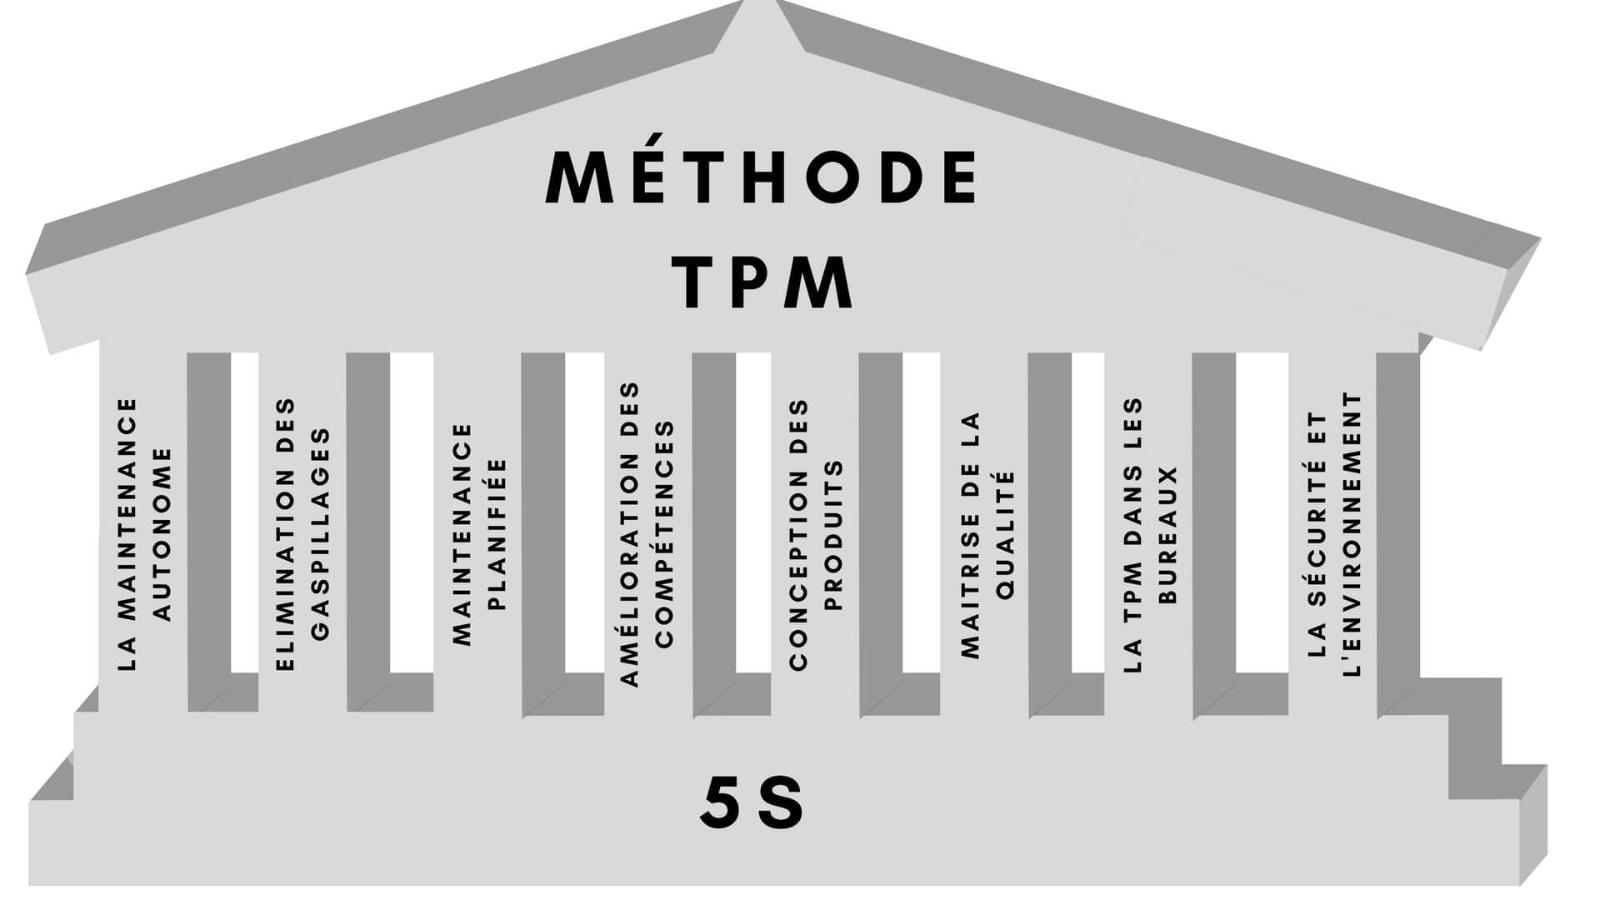 The 8 pillars of Lean Manufacturing with TPM and 5S